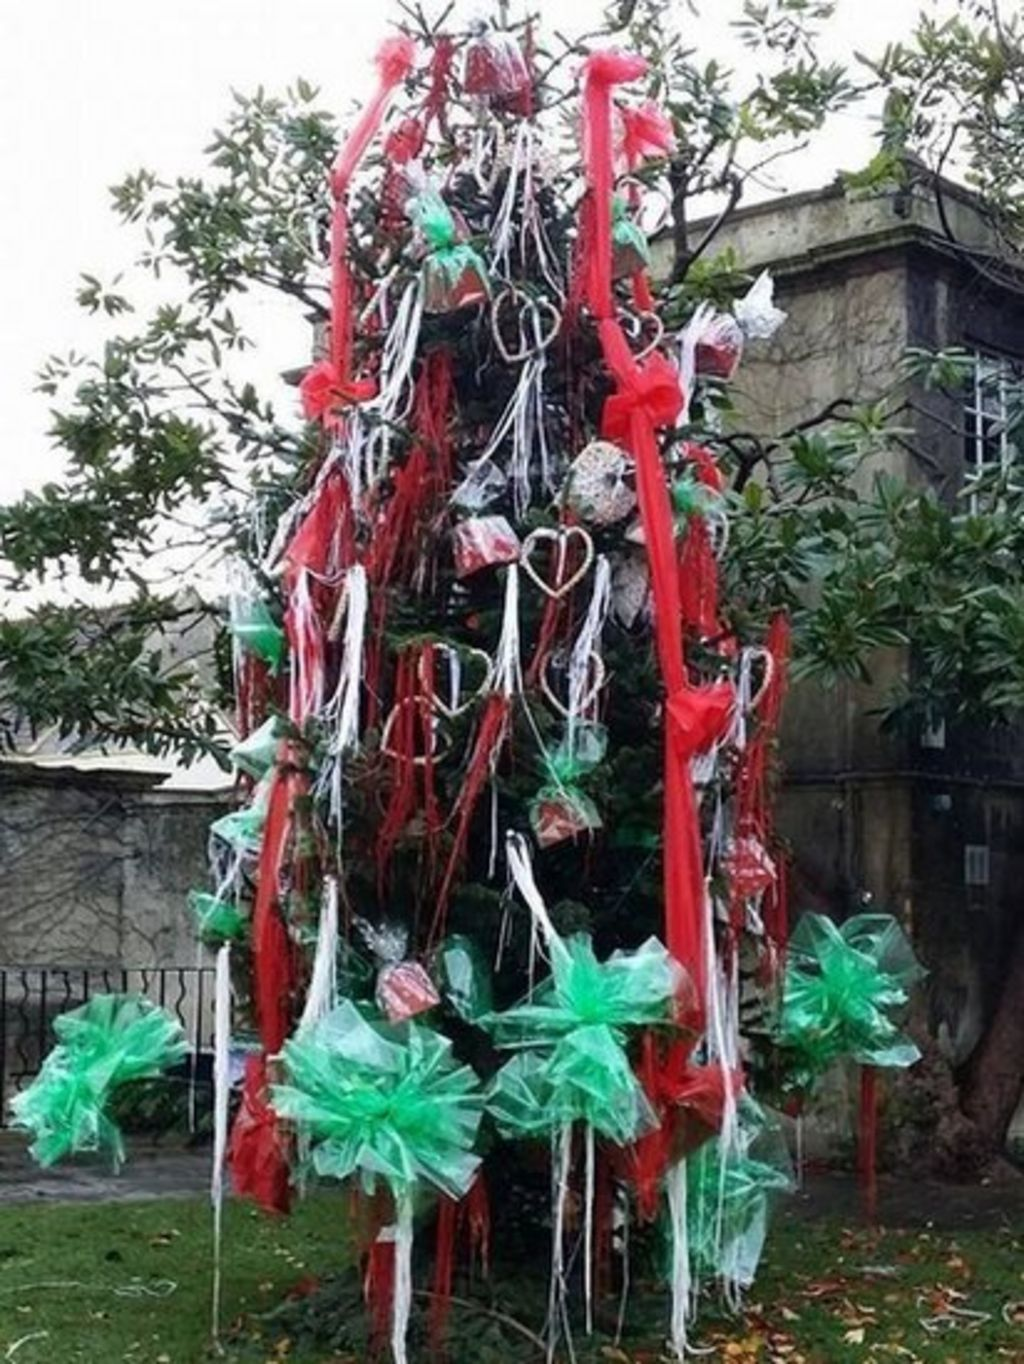 Bradford on avon christmas tree design described as a